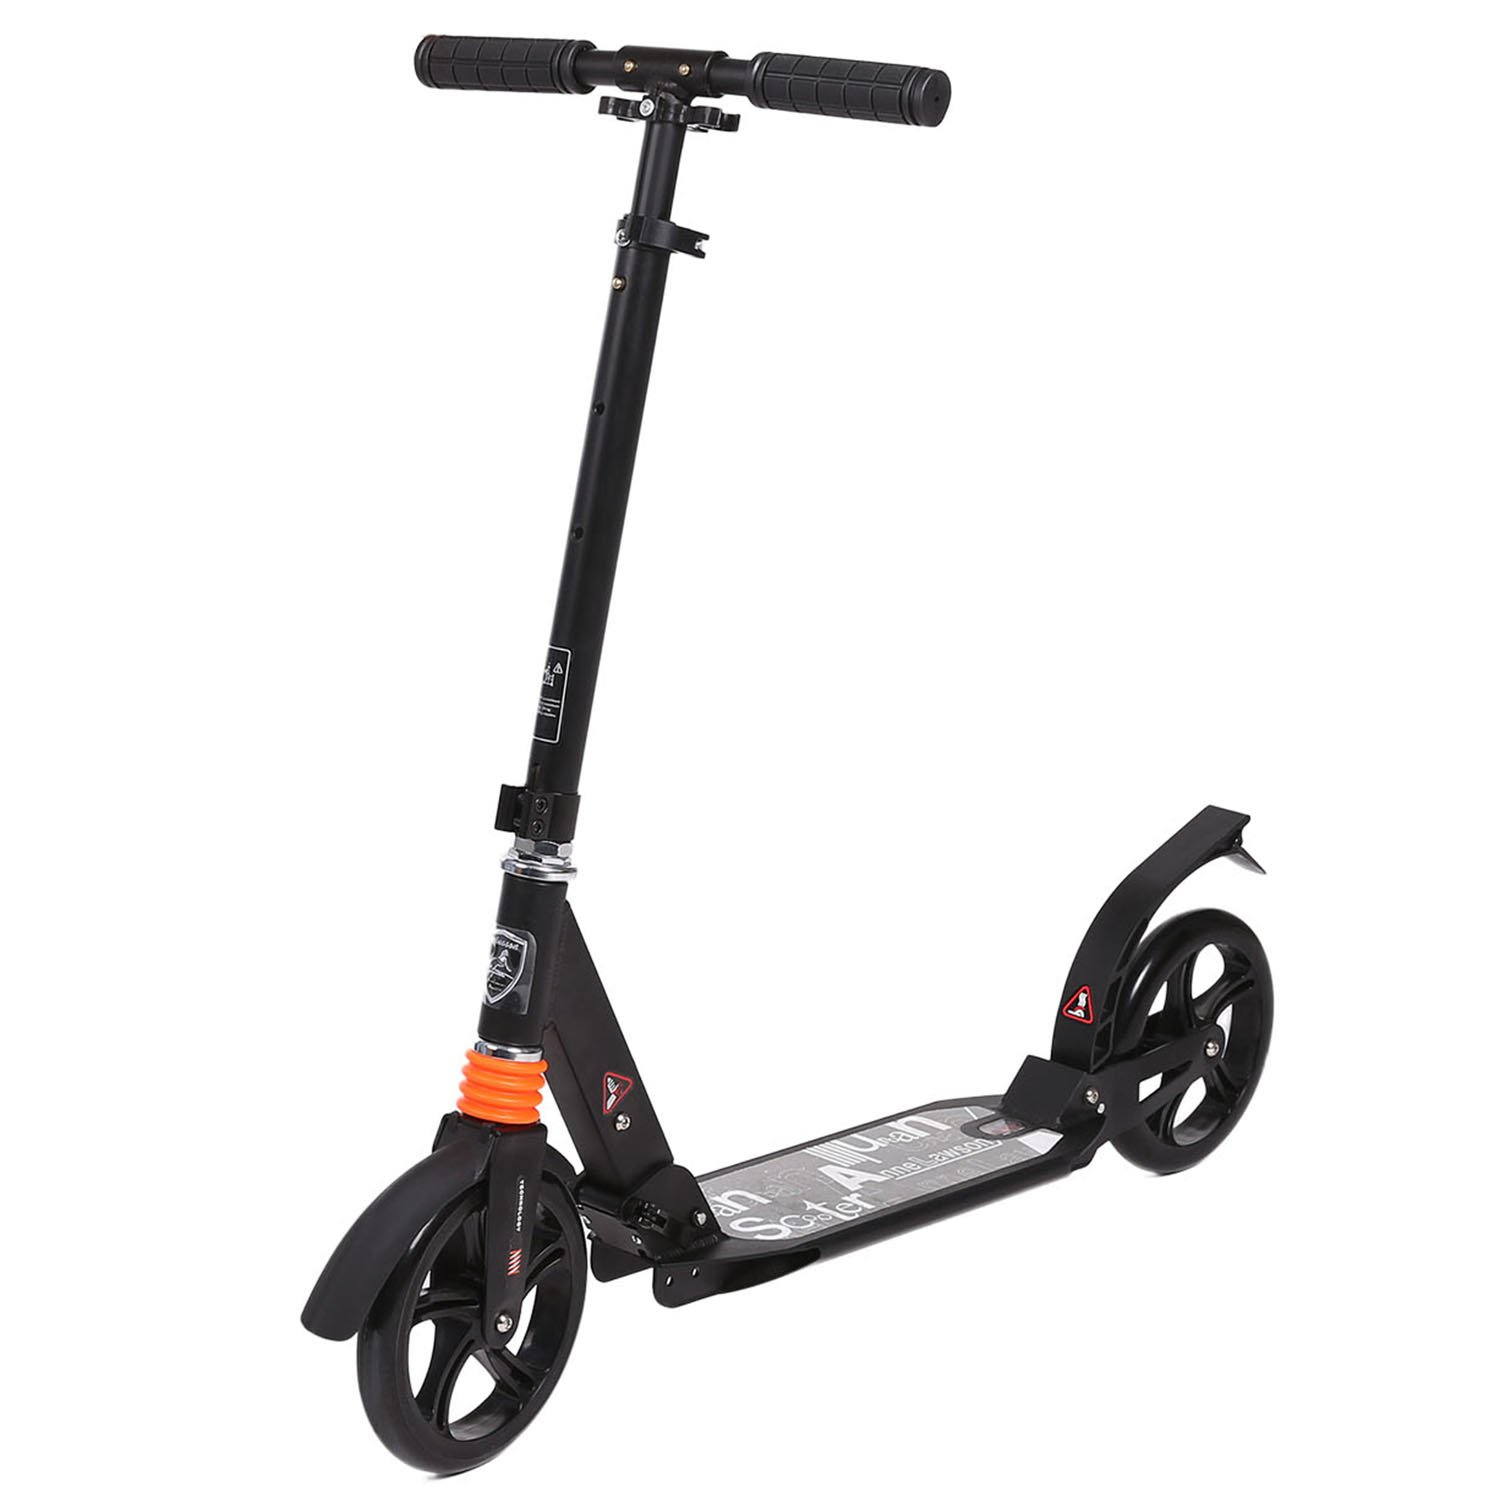 Kemanner Adult Kick Scooter with Large 205MM Wheels - Easy-Folding Adjustable Bar Durable Alloy City Push Kick Scooter - Supports 220lbs Weight